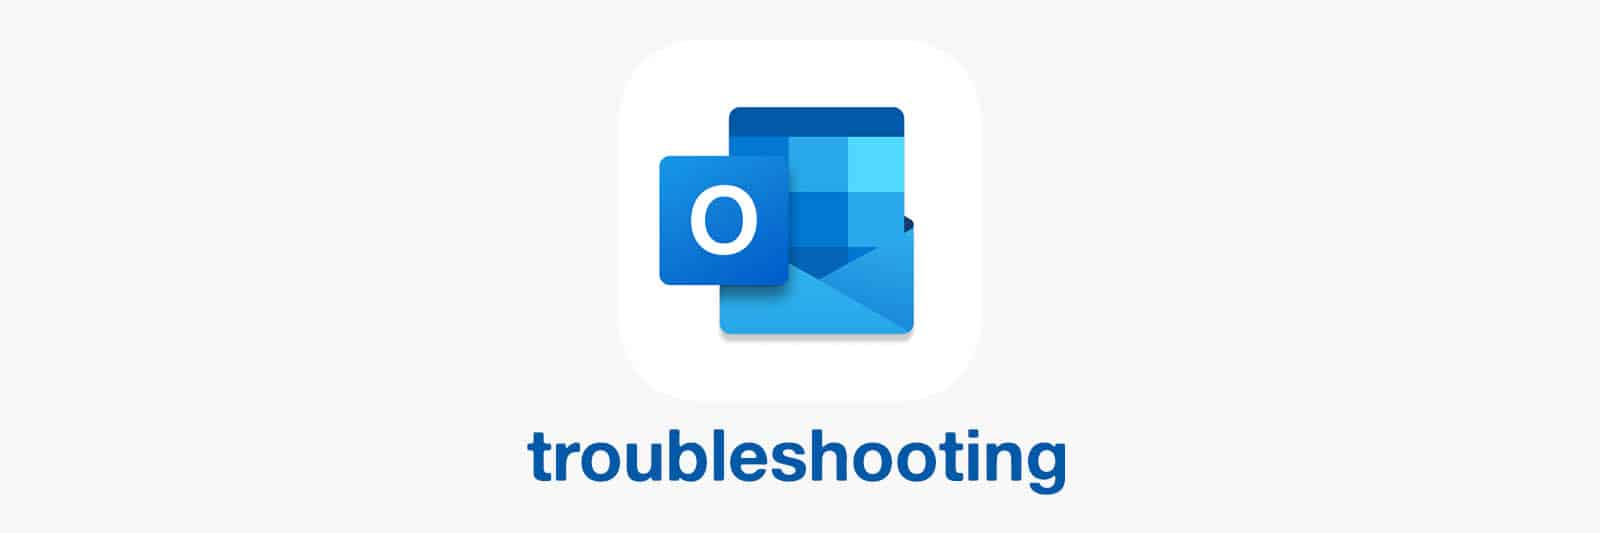 outlook-mail-troubleshooting